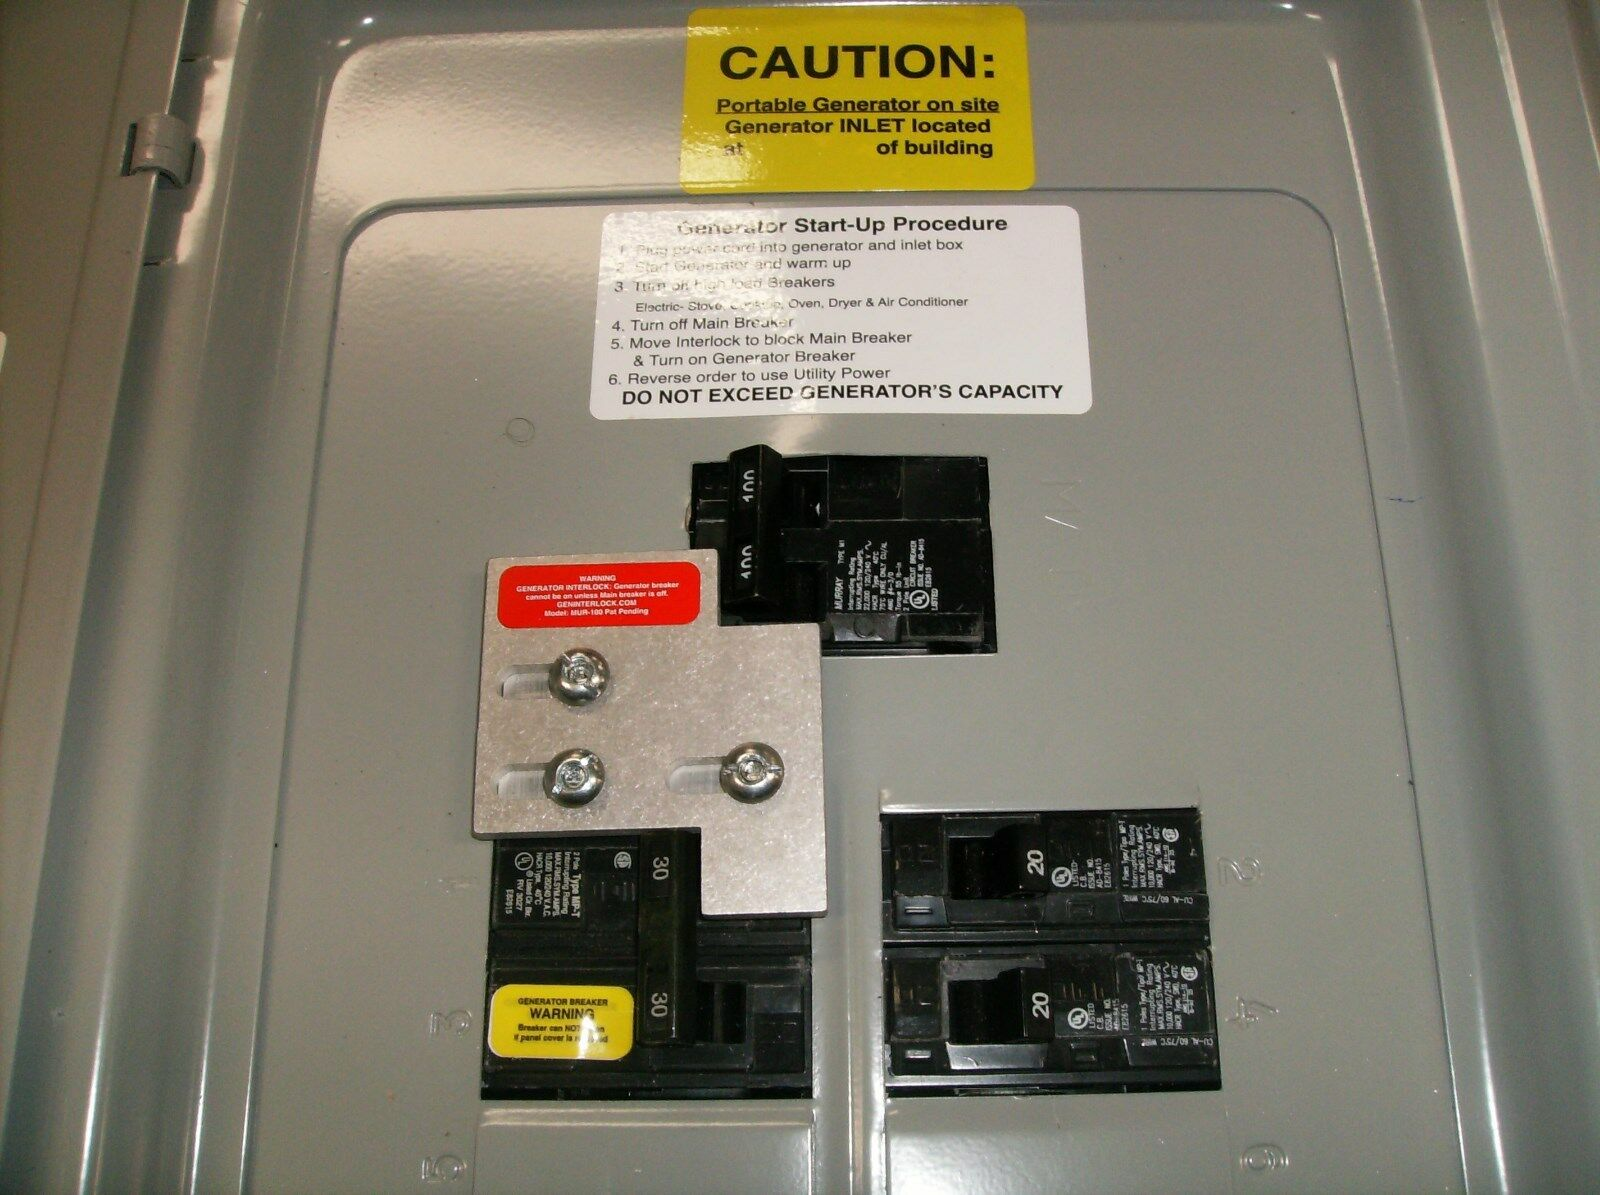 $_57 qo load center wiring diagram & square d by schneider electric qo homeline breaker box wiring diagram at couponss.co